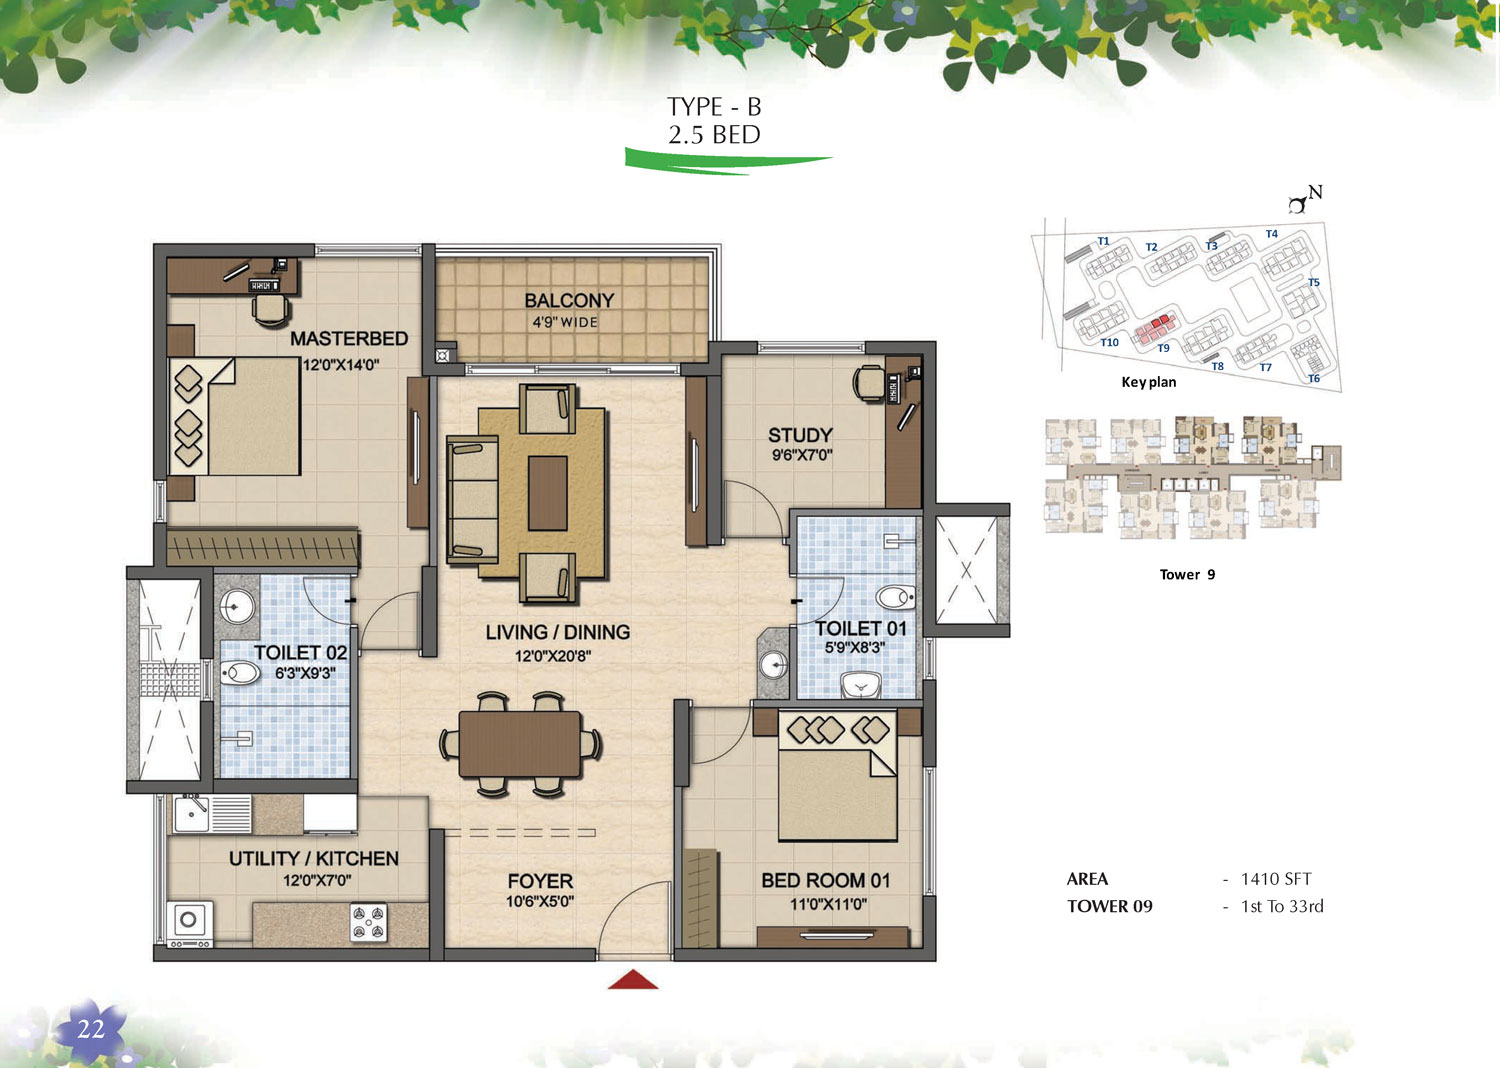 Type B - 2.5 Bed - 1410 Sq Ft